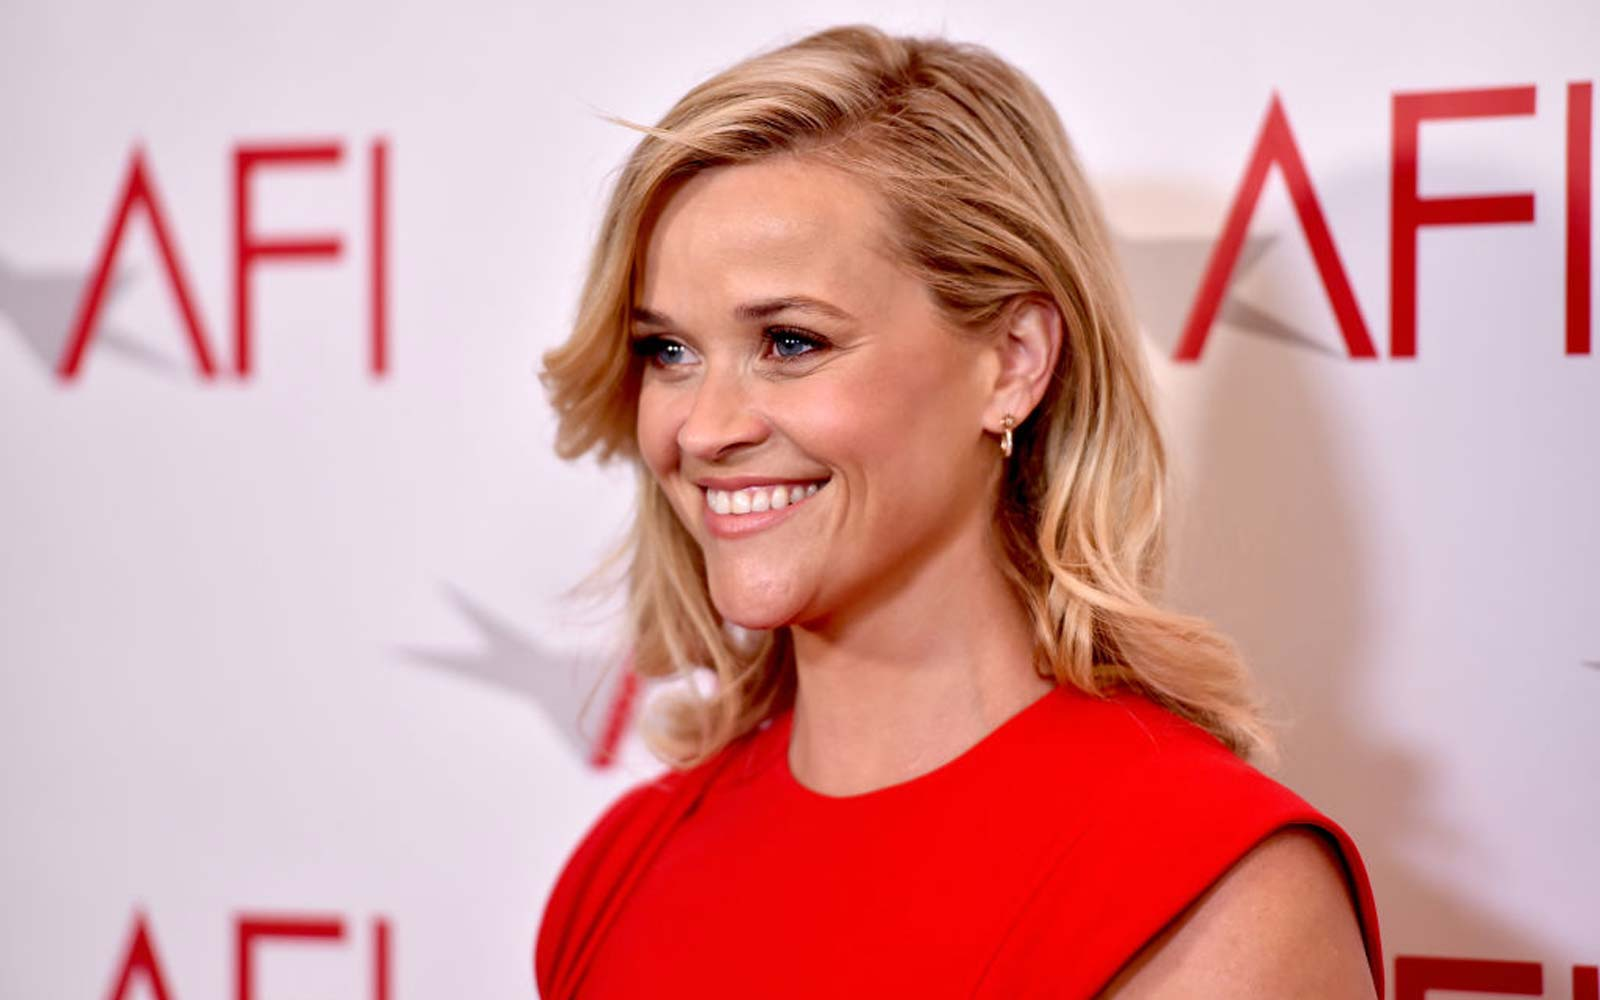 Reese Witherspoon Just Came Out With a New Sandal Collection — and It Is Absolutely Gorgeous